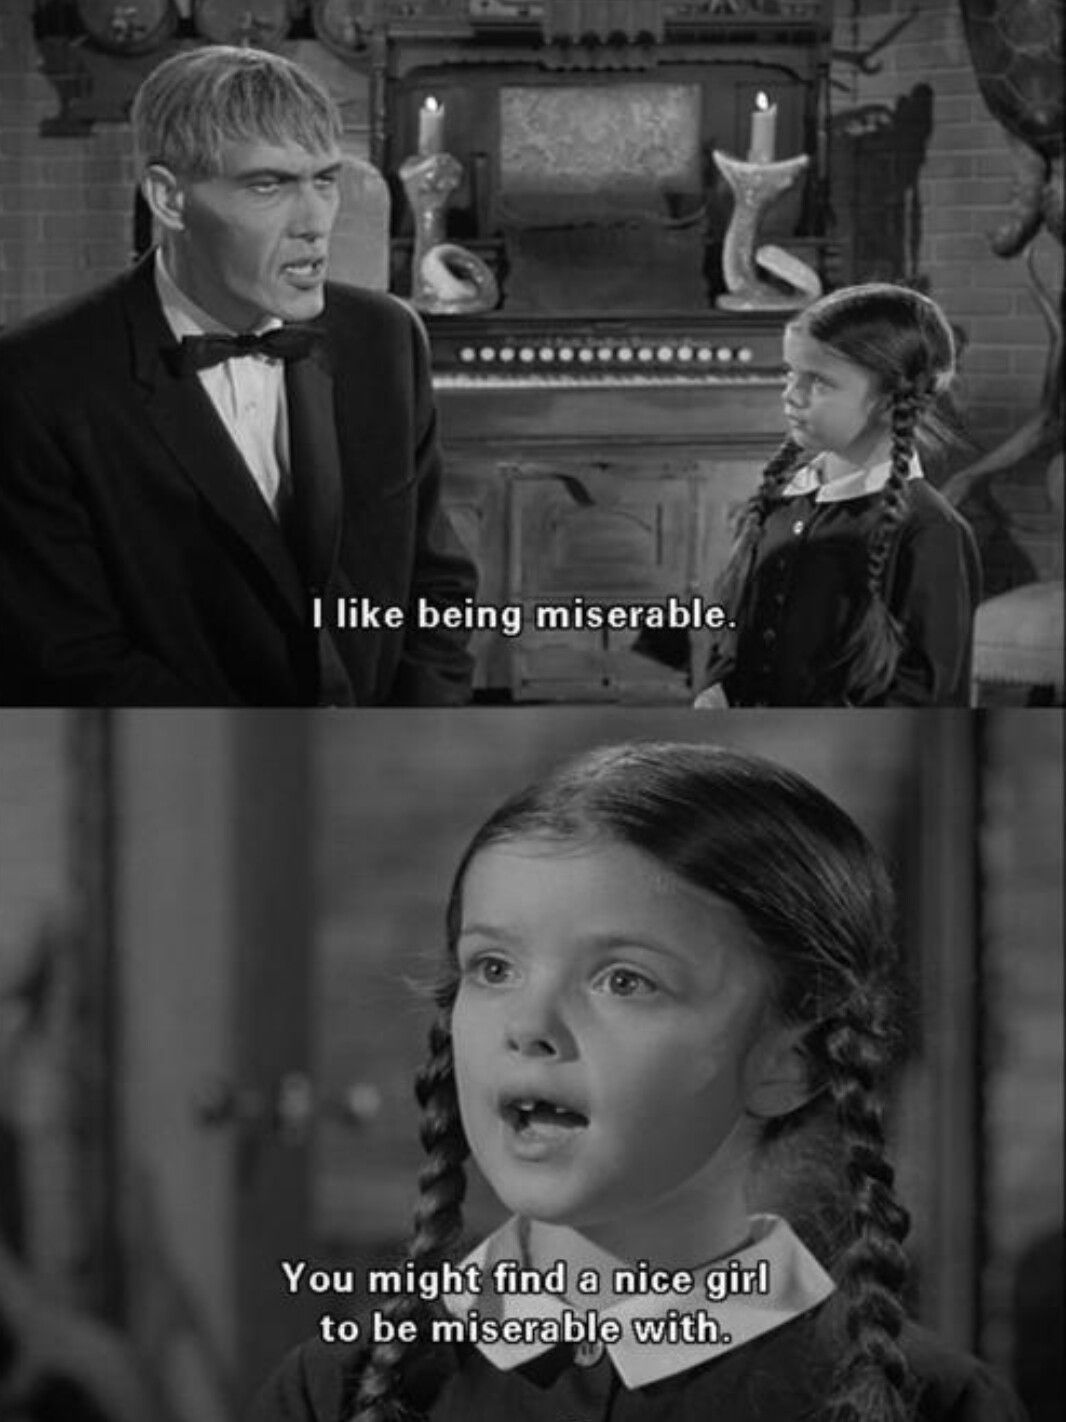 The addams family most people nowadays haha